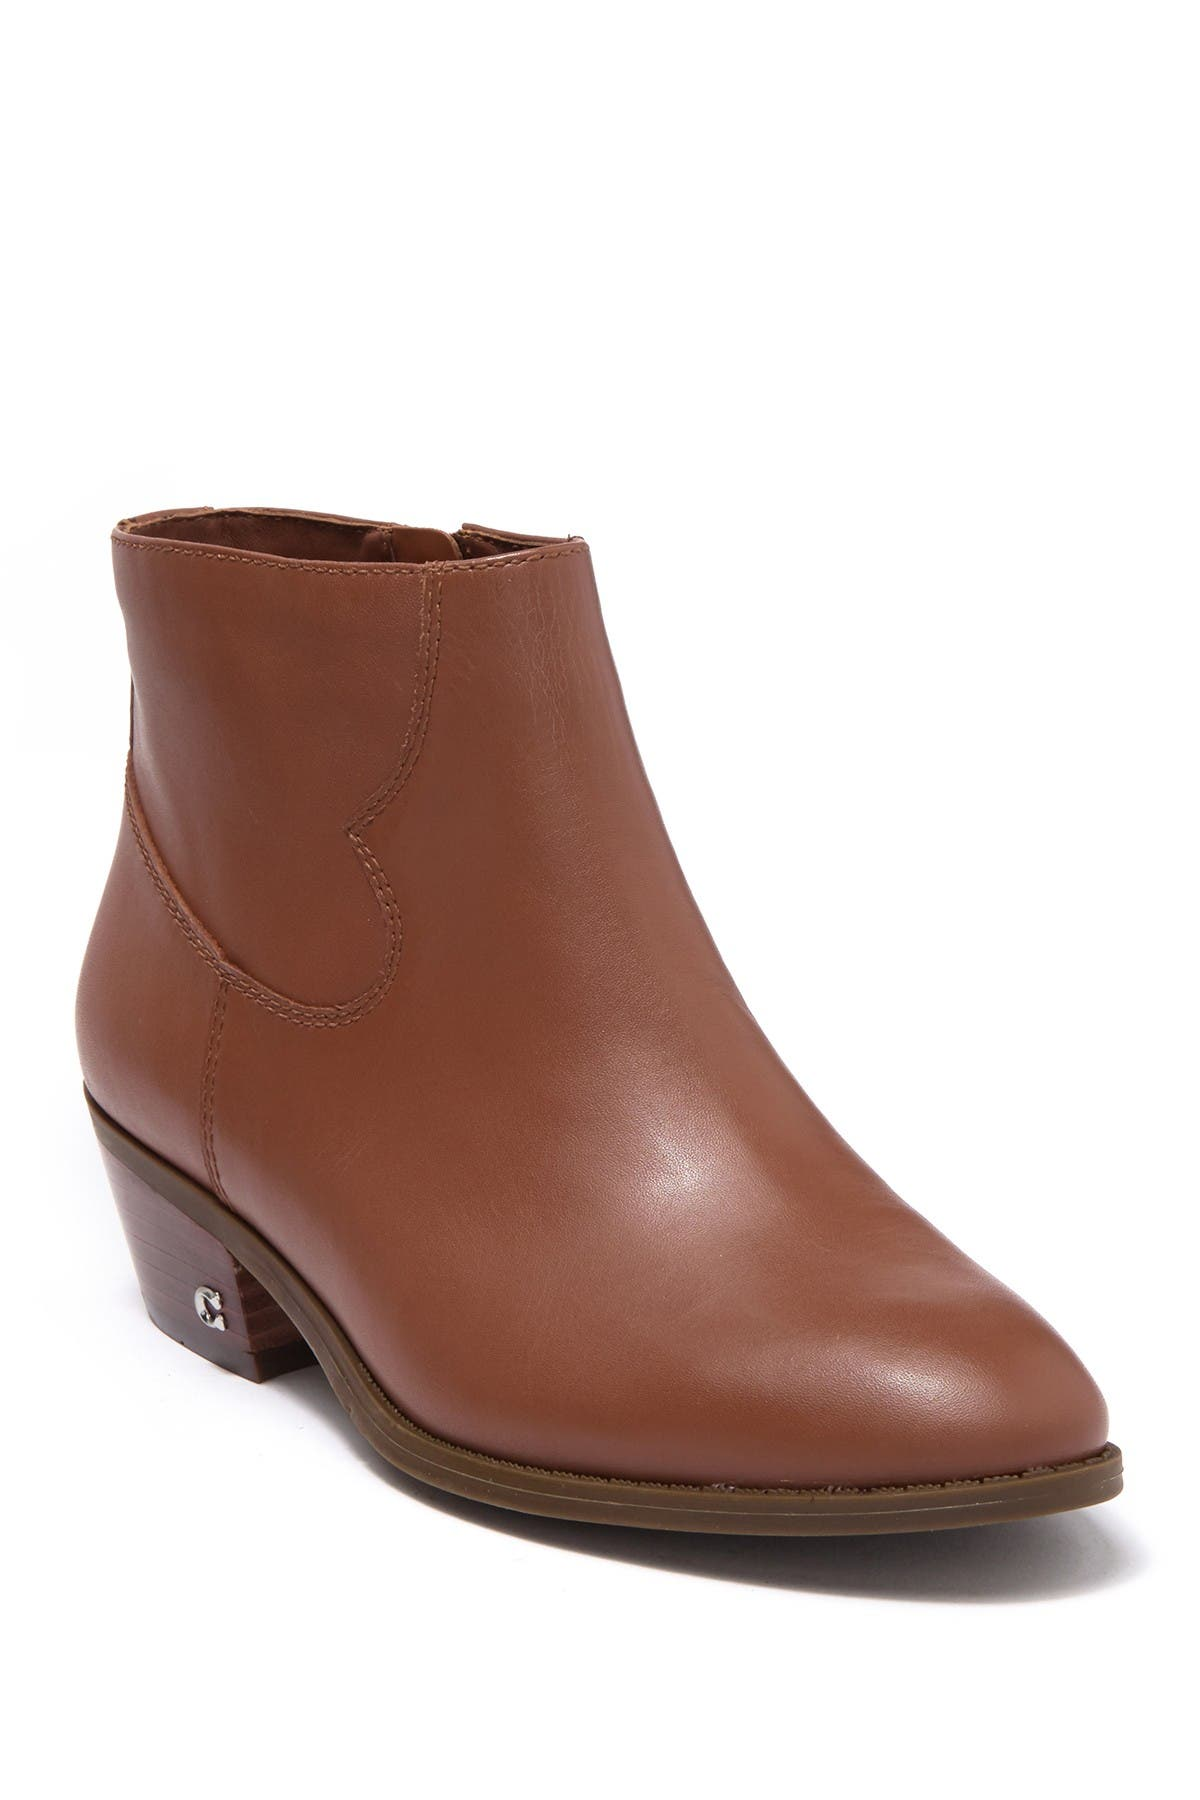 Image of Coach Dannie Leather Ankle Bootie